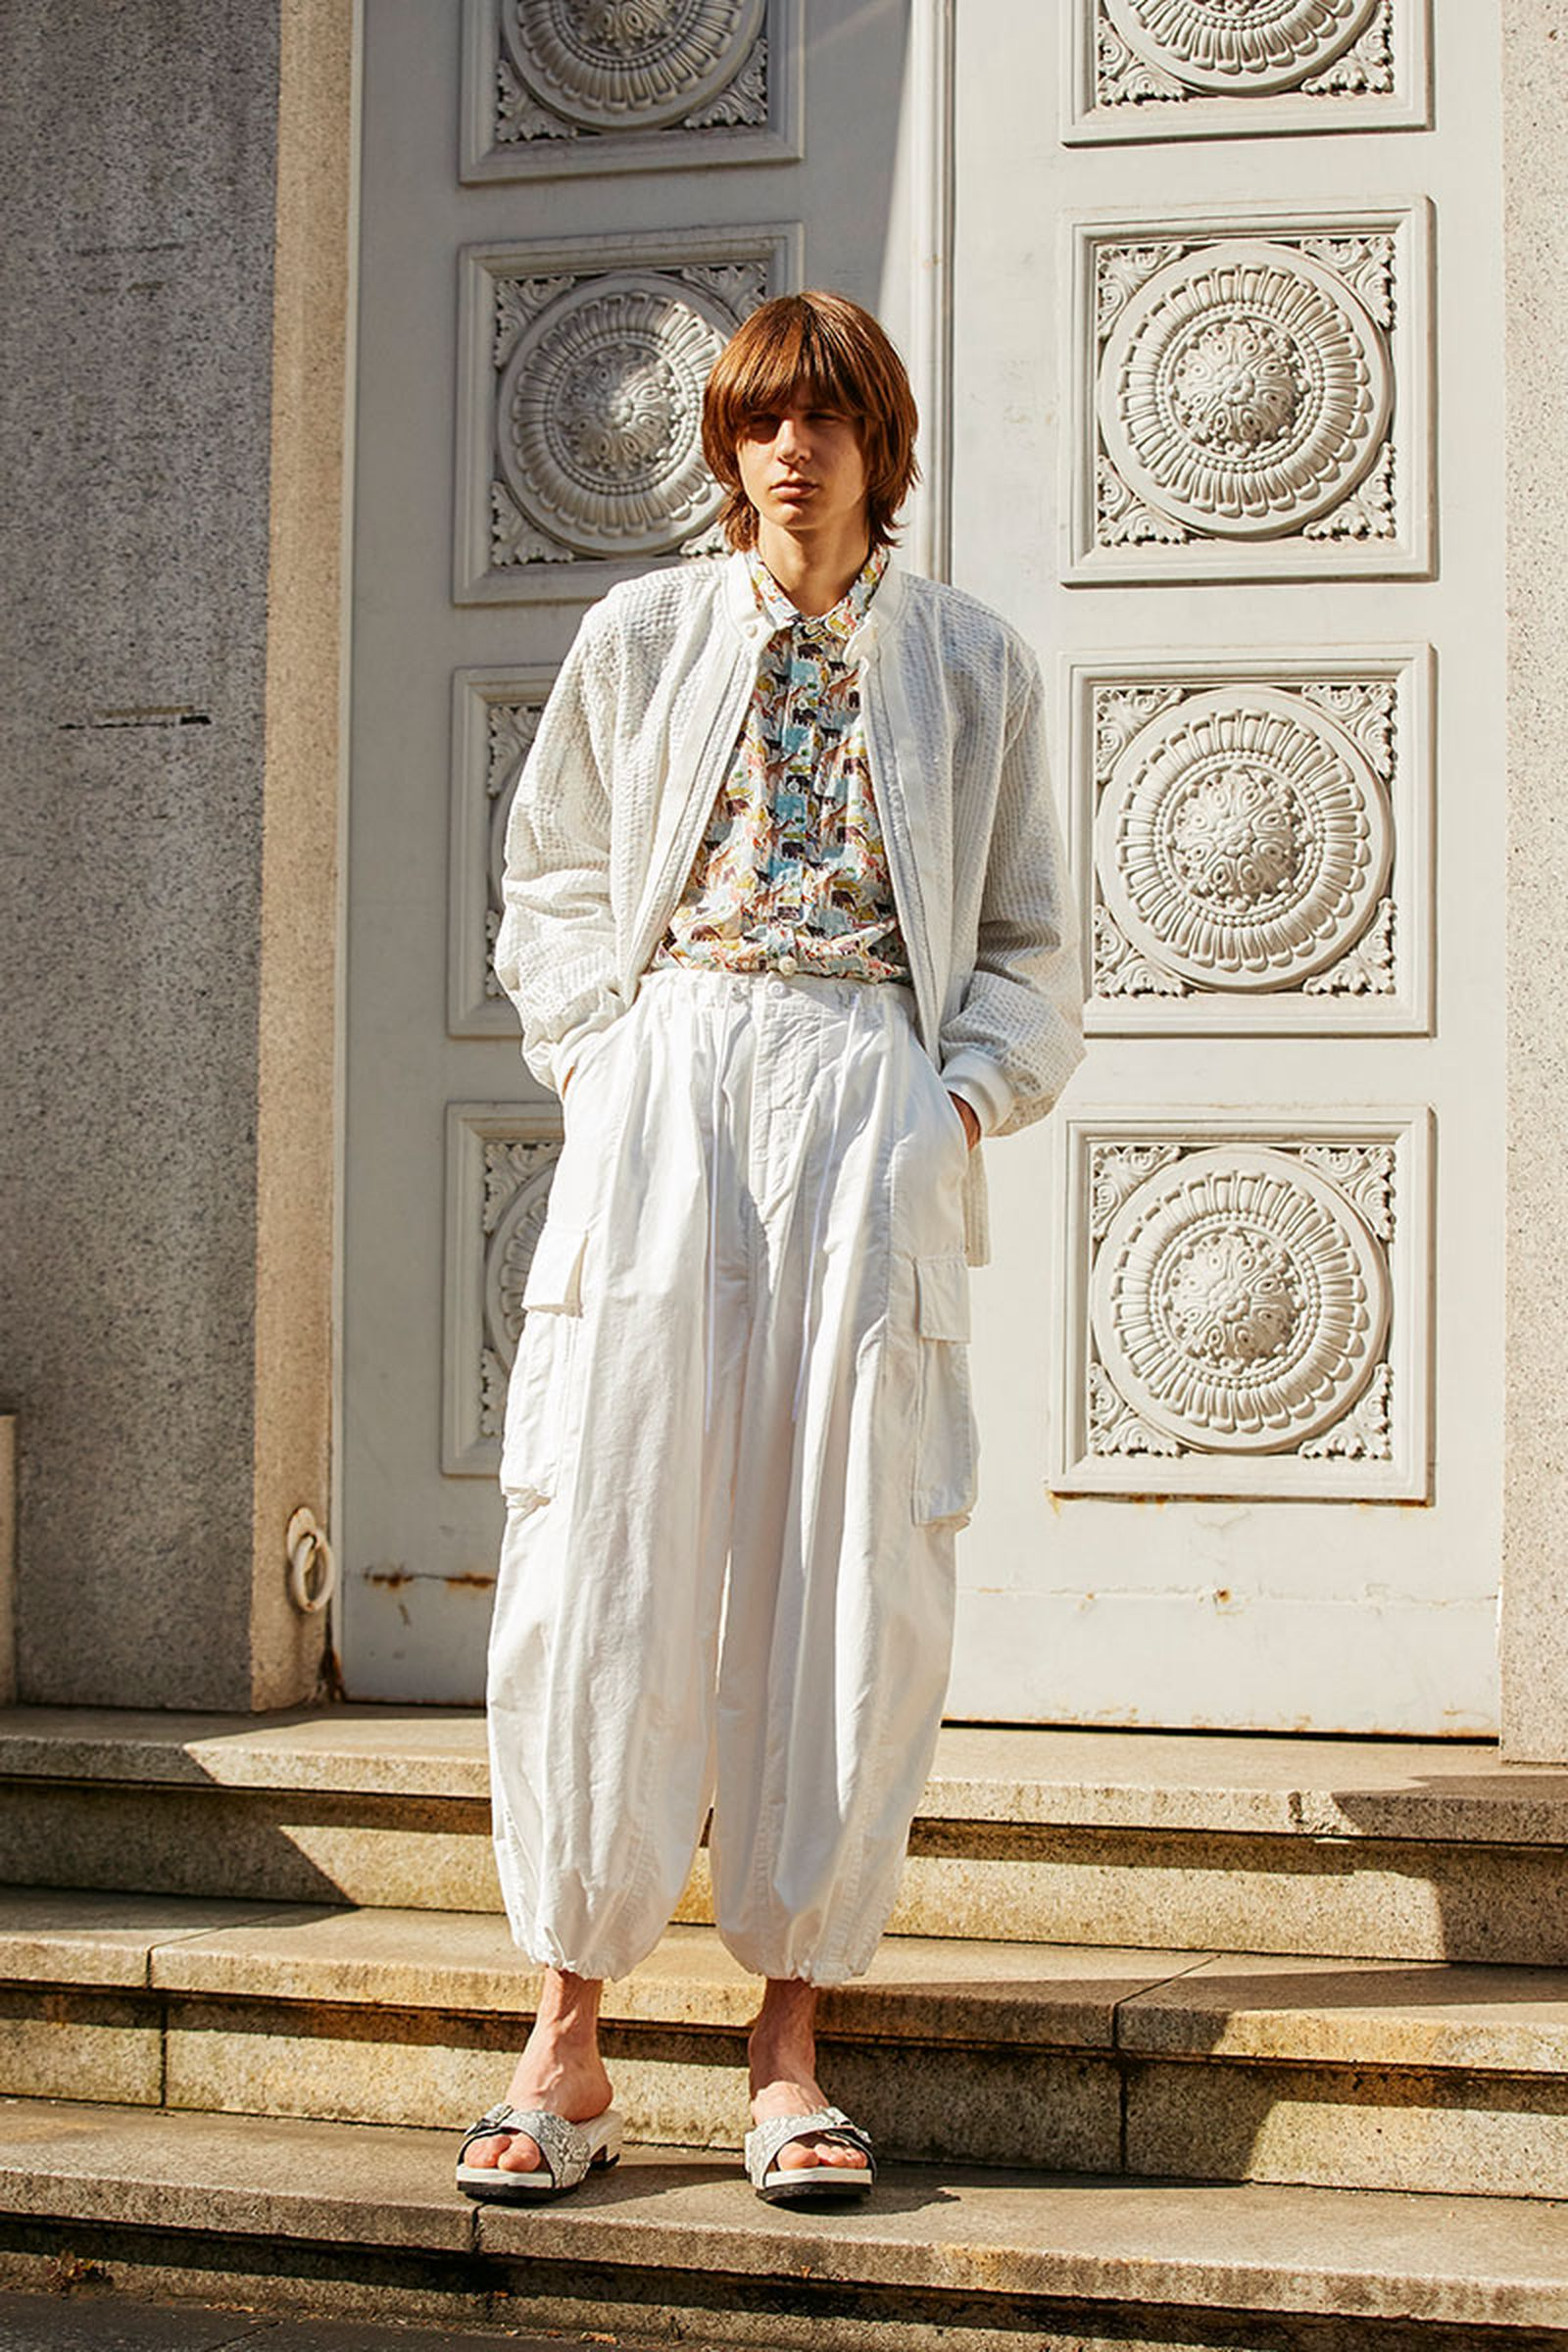 needles ss 20 lookbook nepenthes ss20